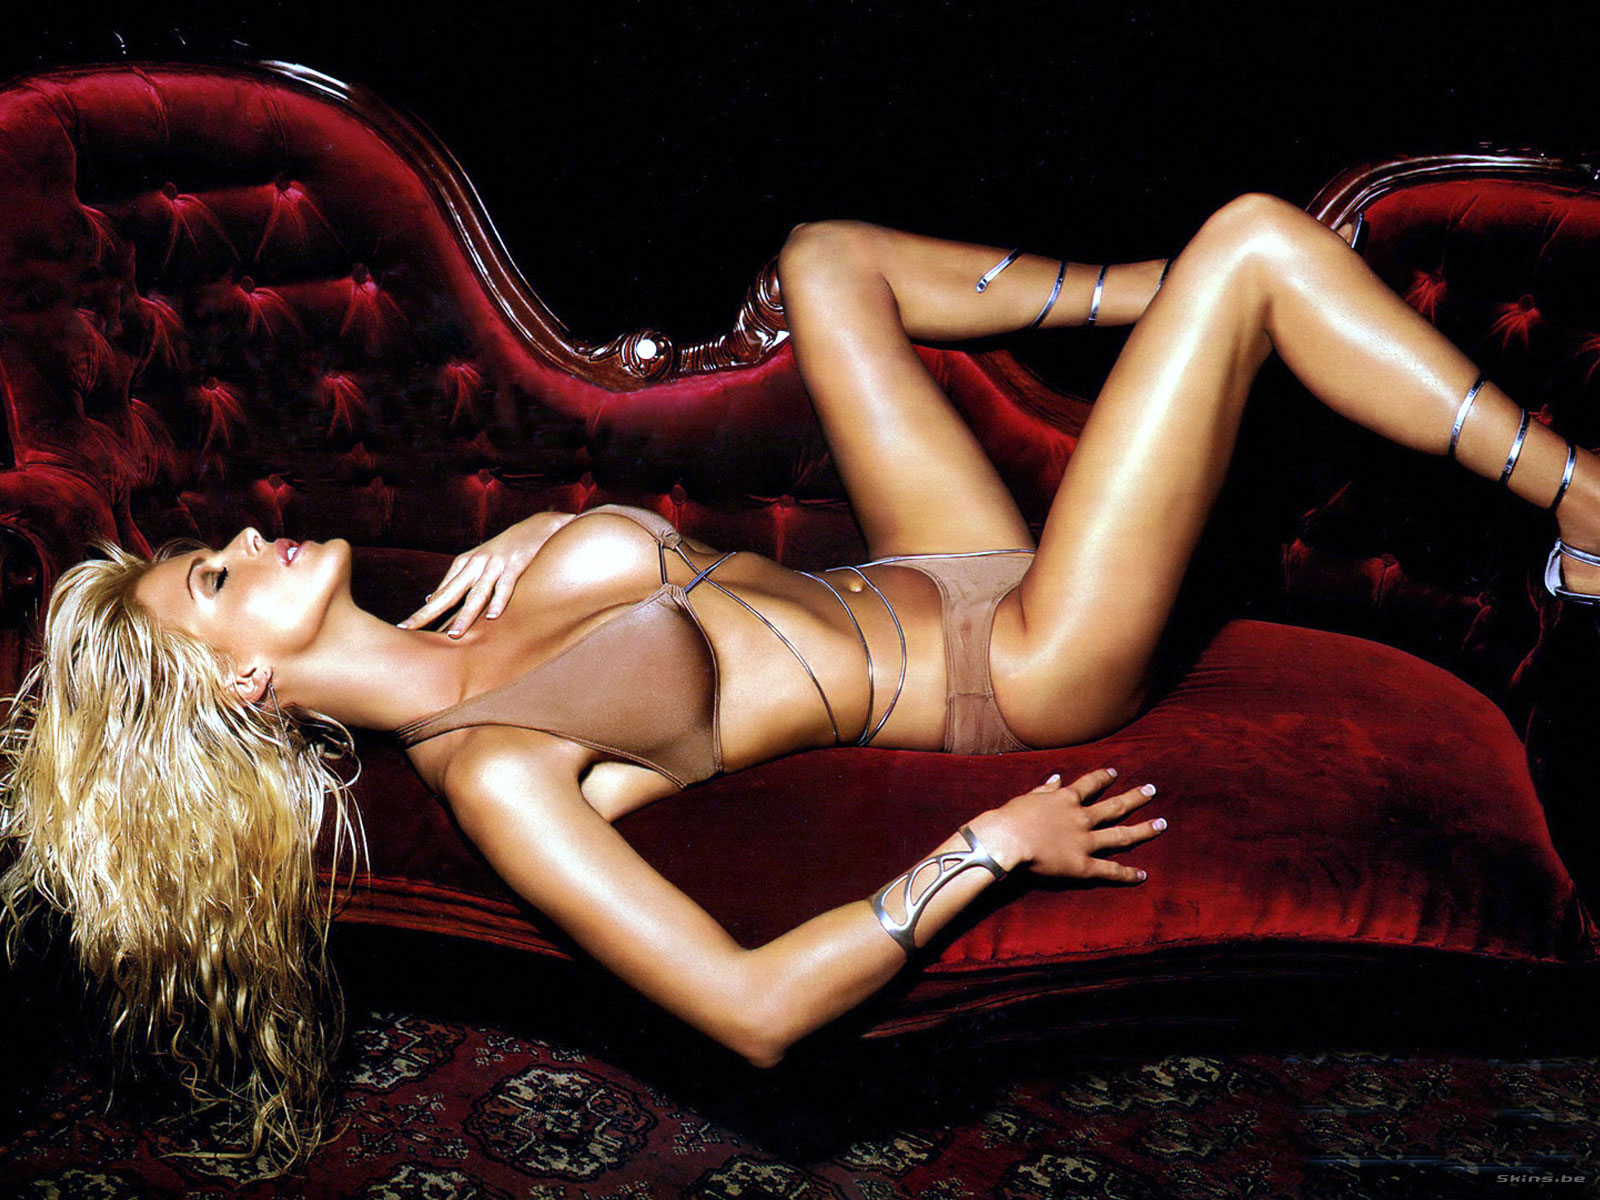 Victoria Silvstedt wallpaper (#24026)